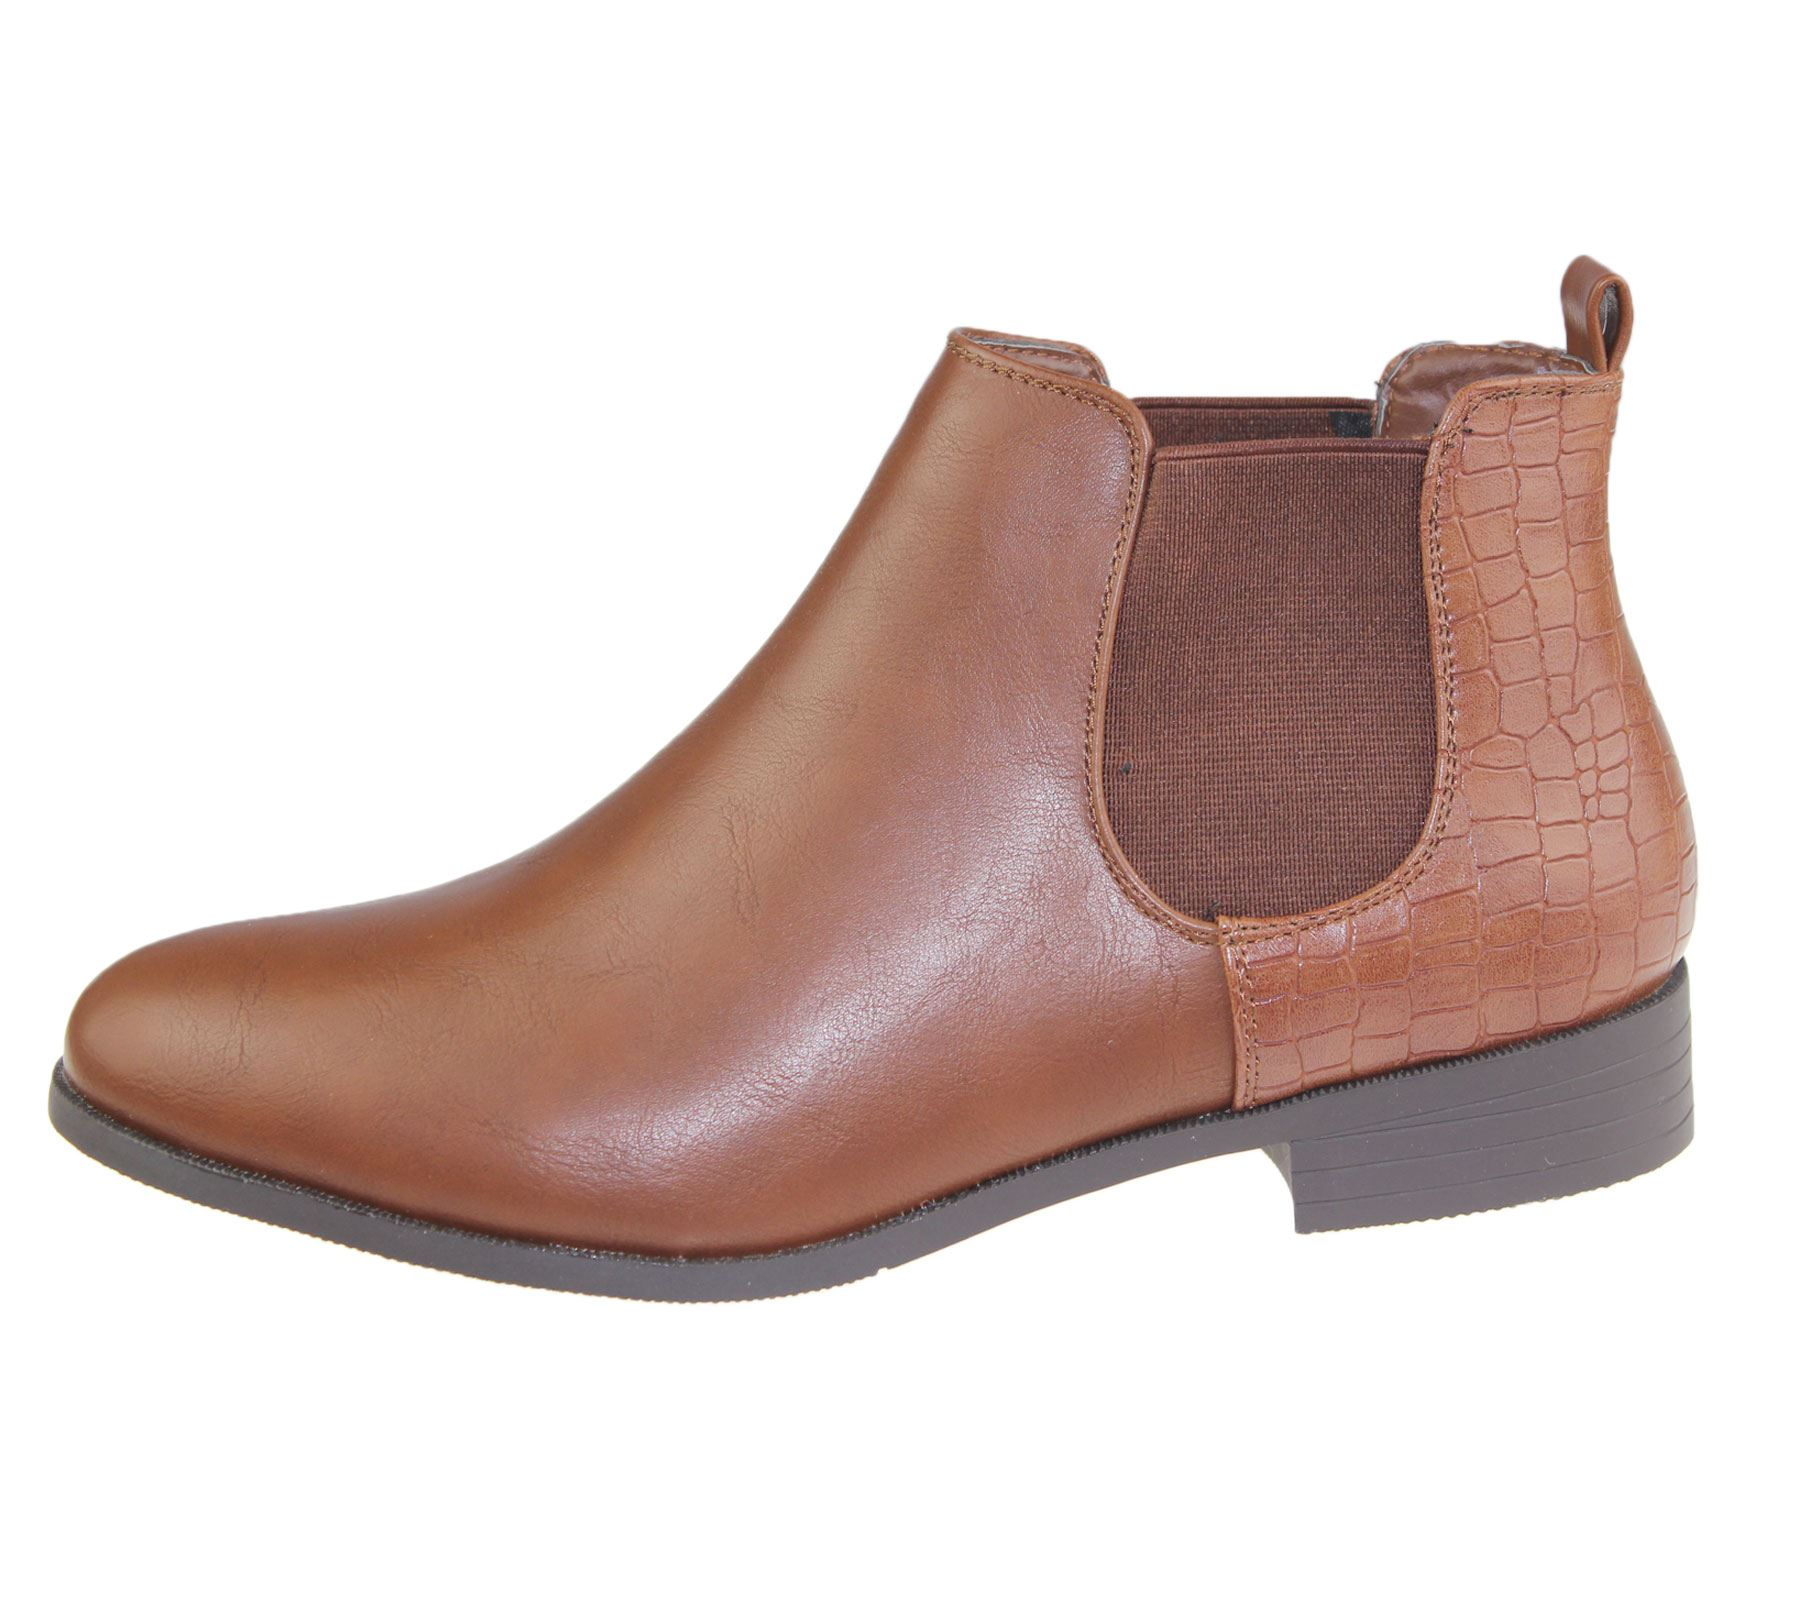 Womens-Ankle-Boots-Ladies-Chelsea-High-Top-Casual-Riding-Elasticated-Shoes-Size thumbnail 3